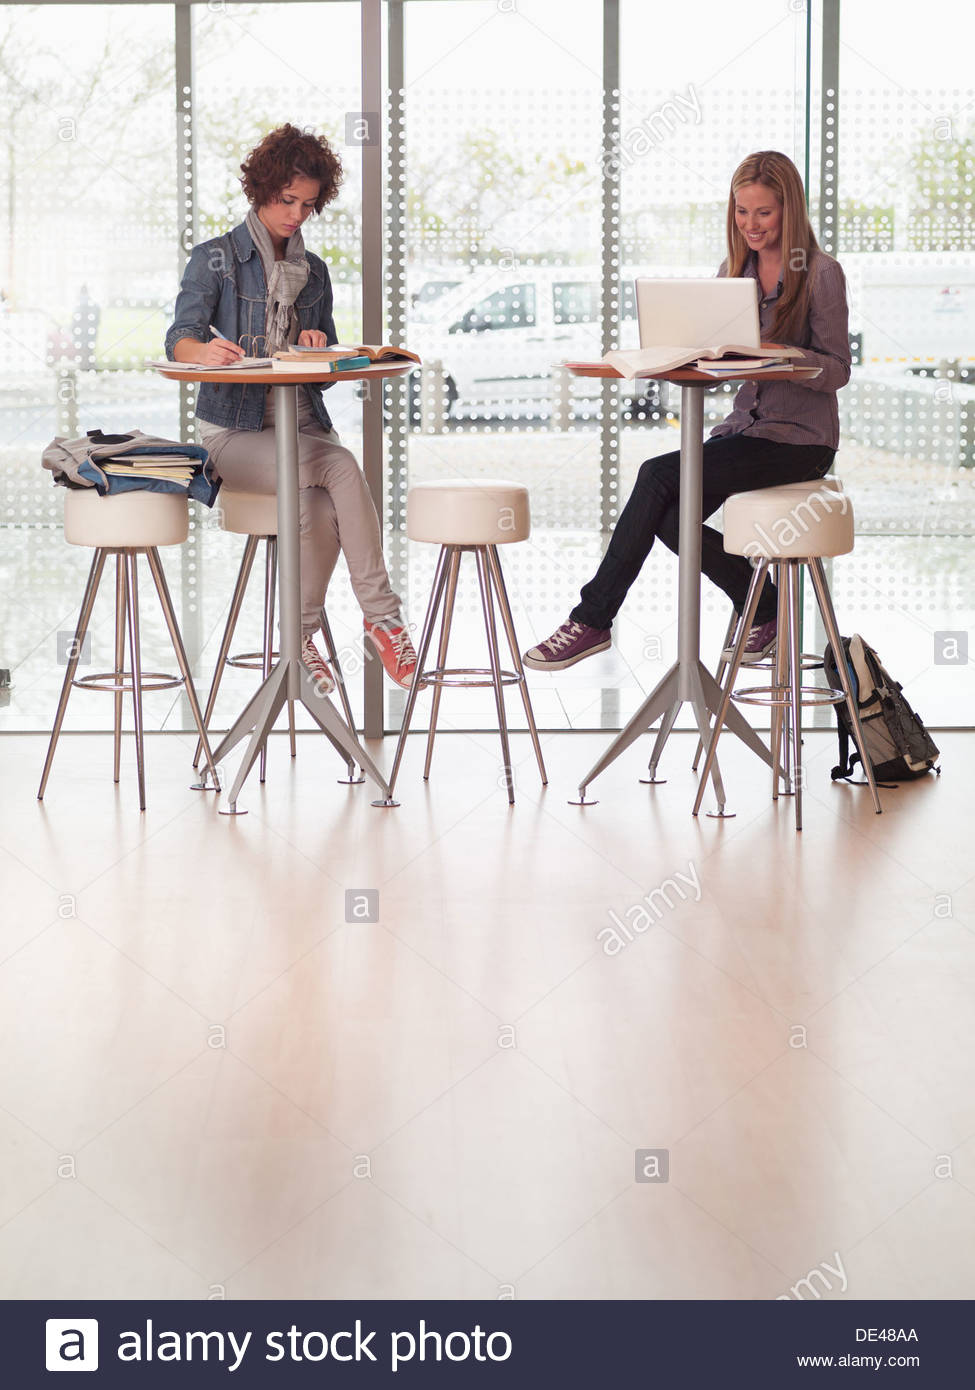 College students sitting at table using laptop and writing - Stock Image